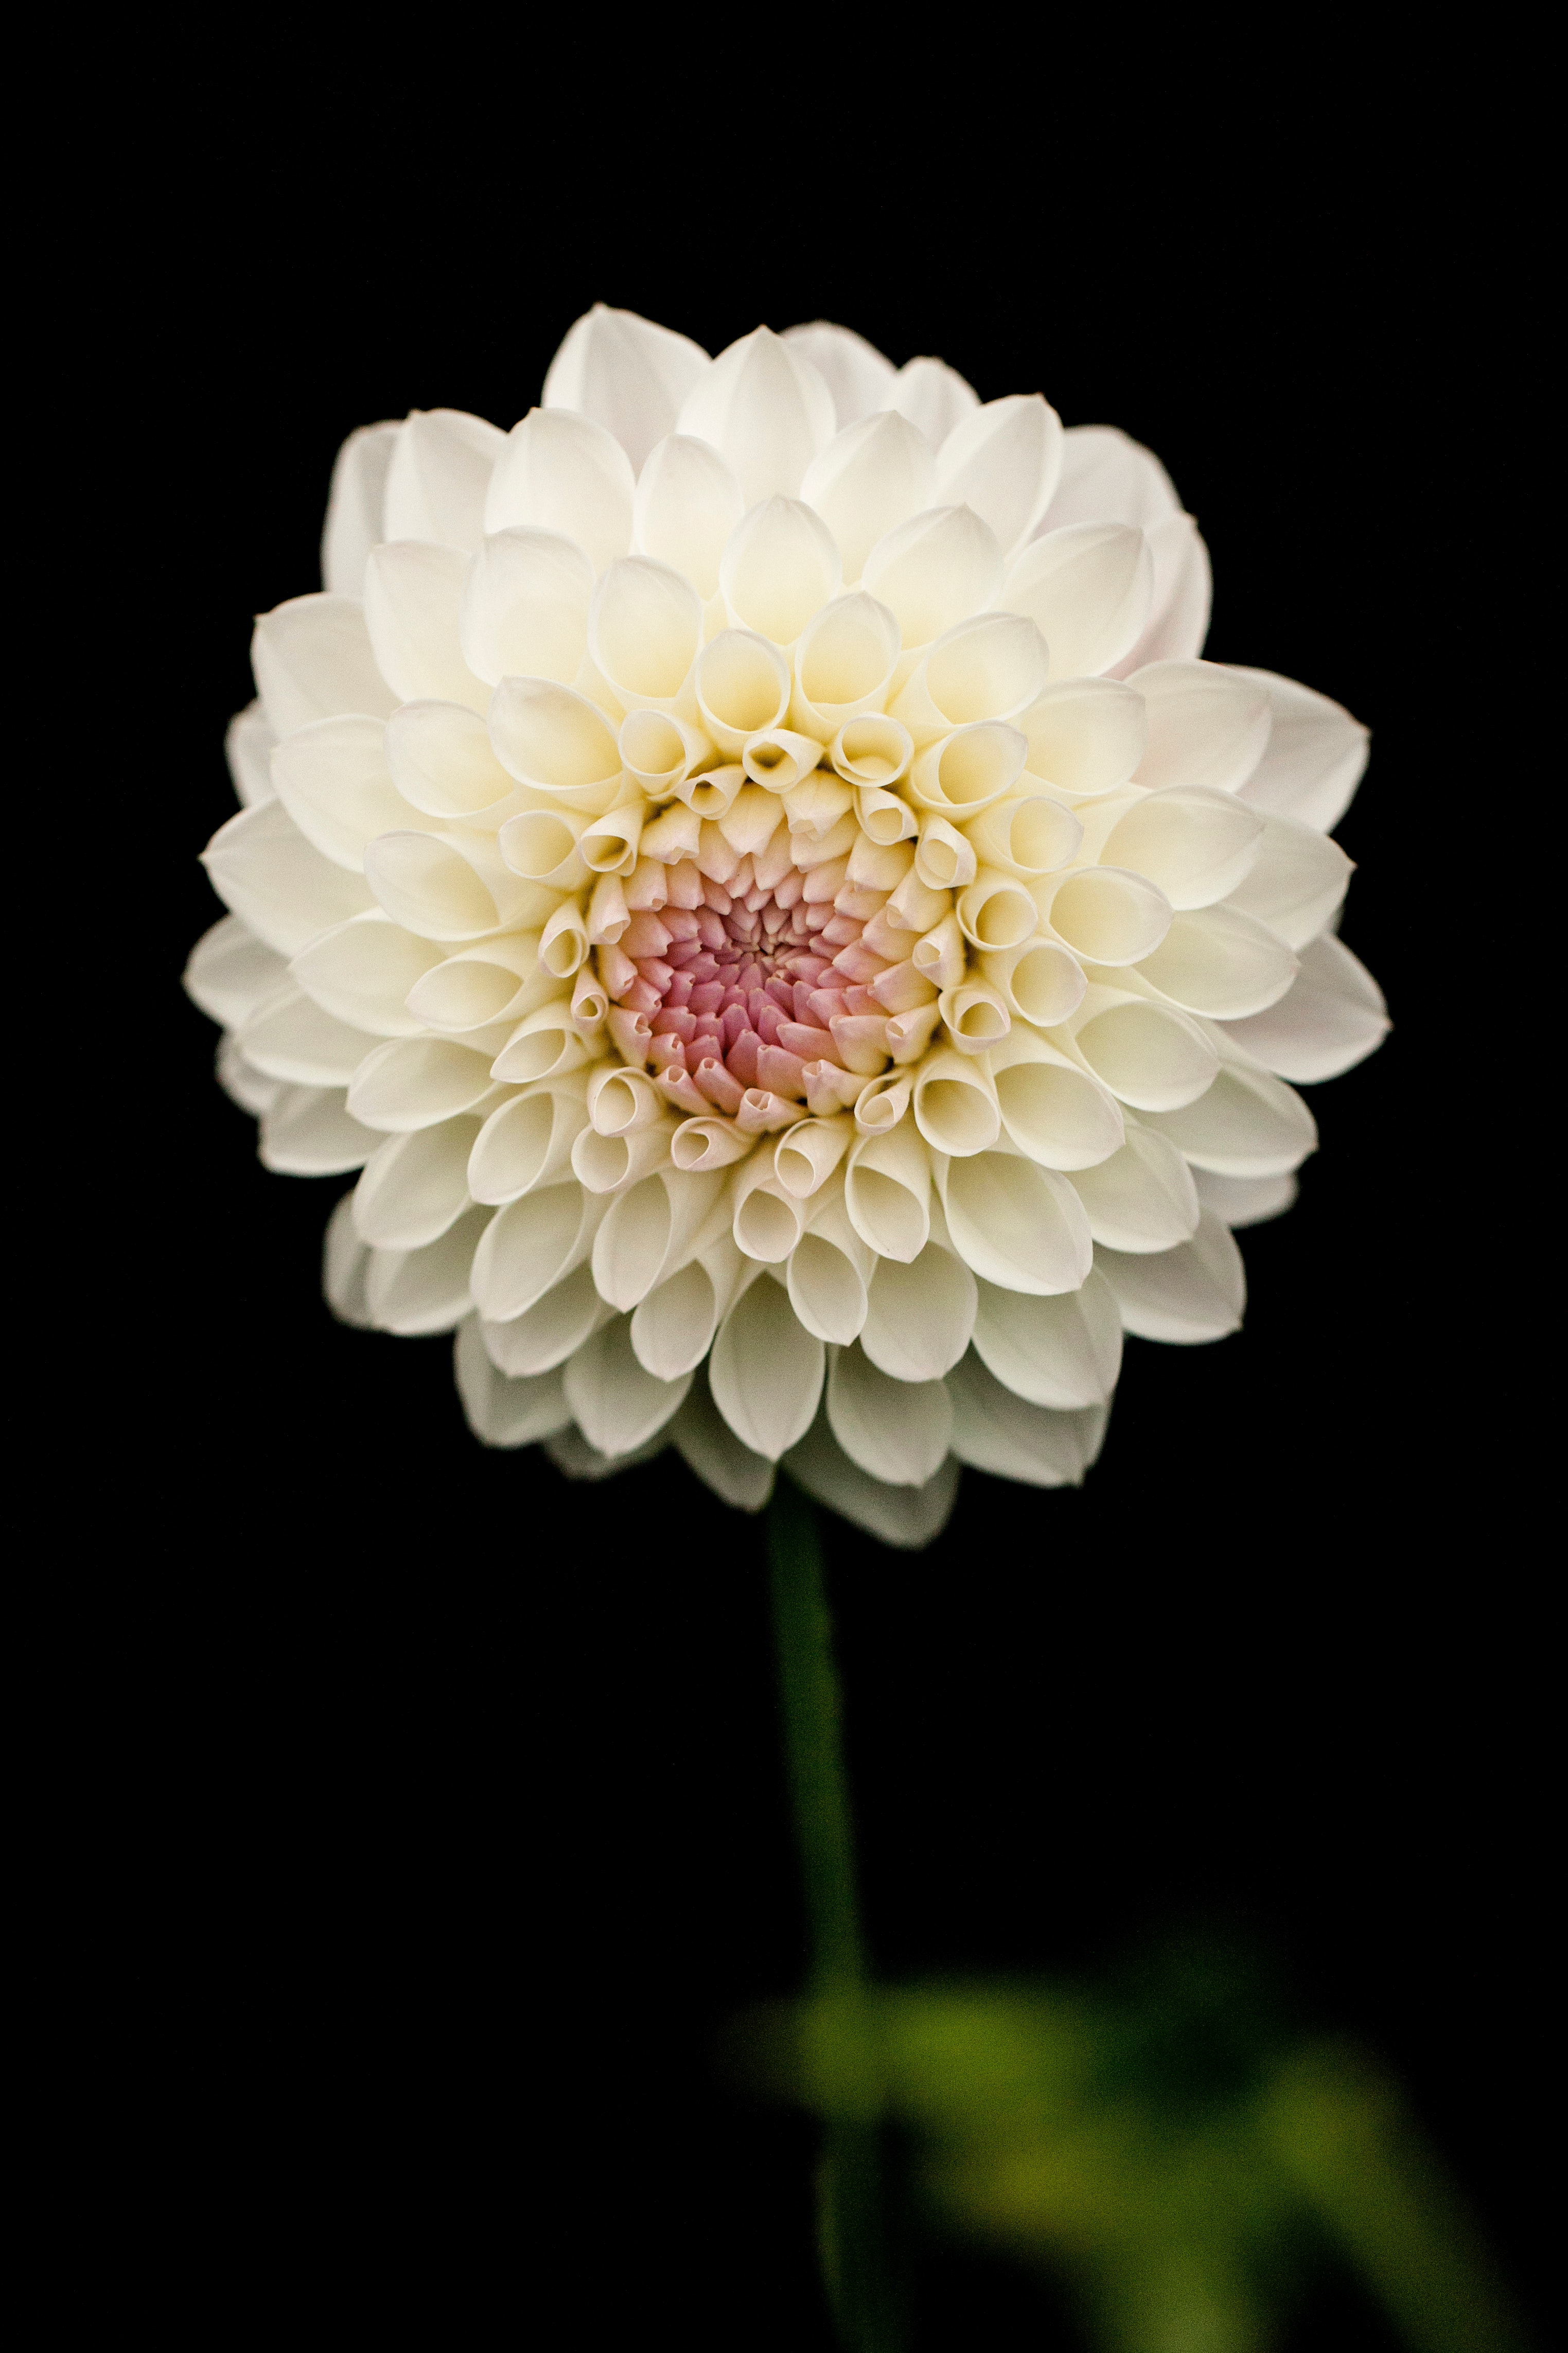 White Petaled Flower, Garden, Summer, Stem, Season, HQ Photo